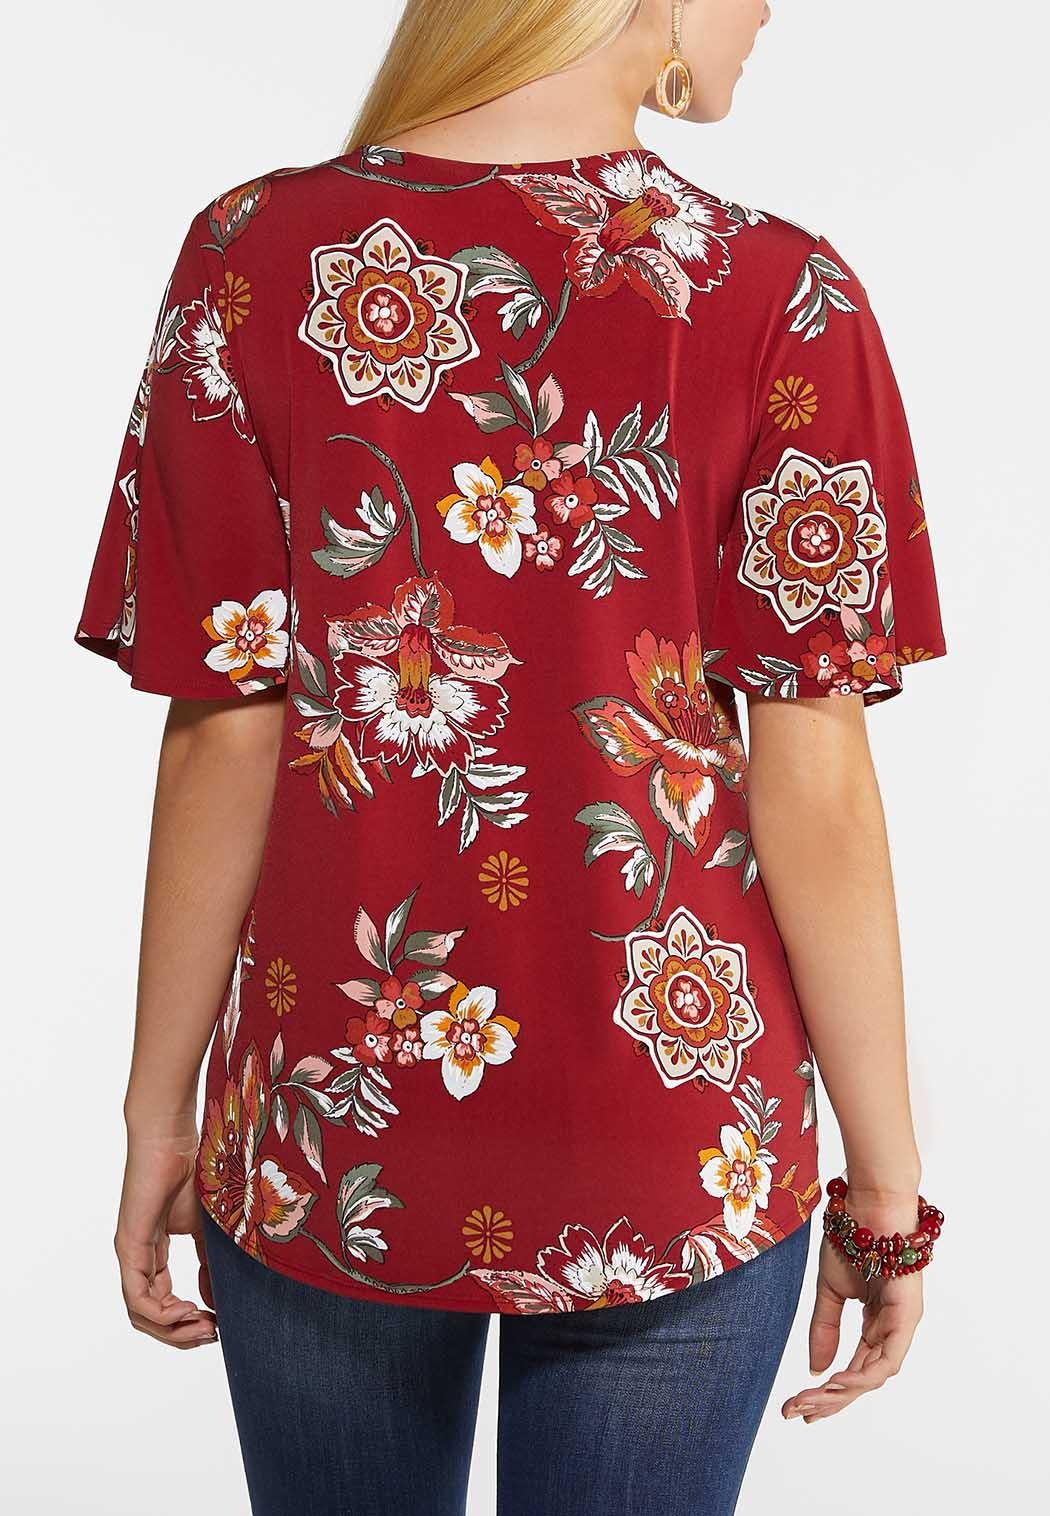 Plus Size Floral Hardware Sleeve Top (Item #43964657)